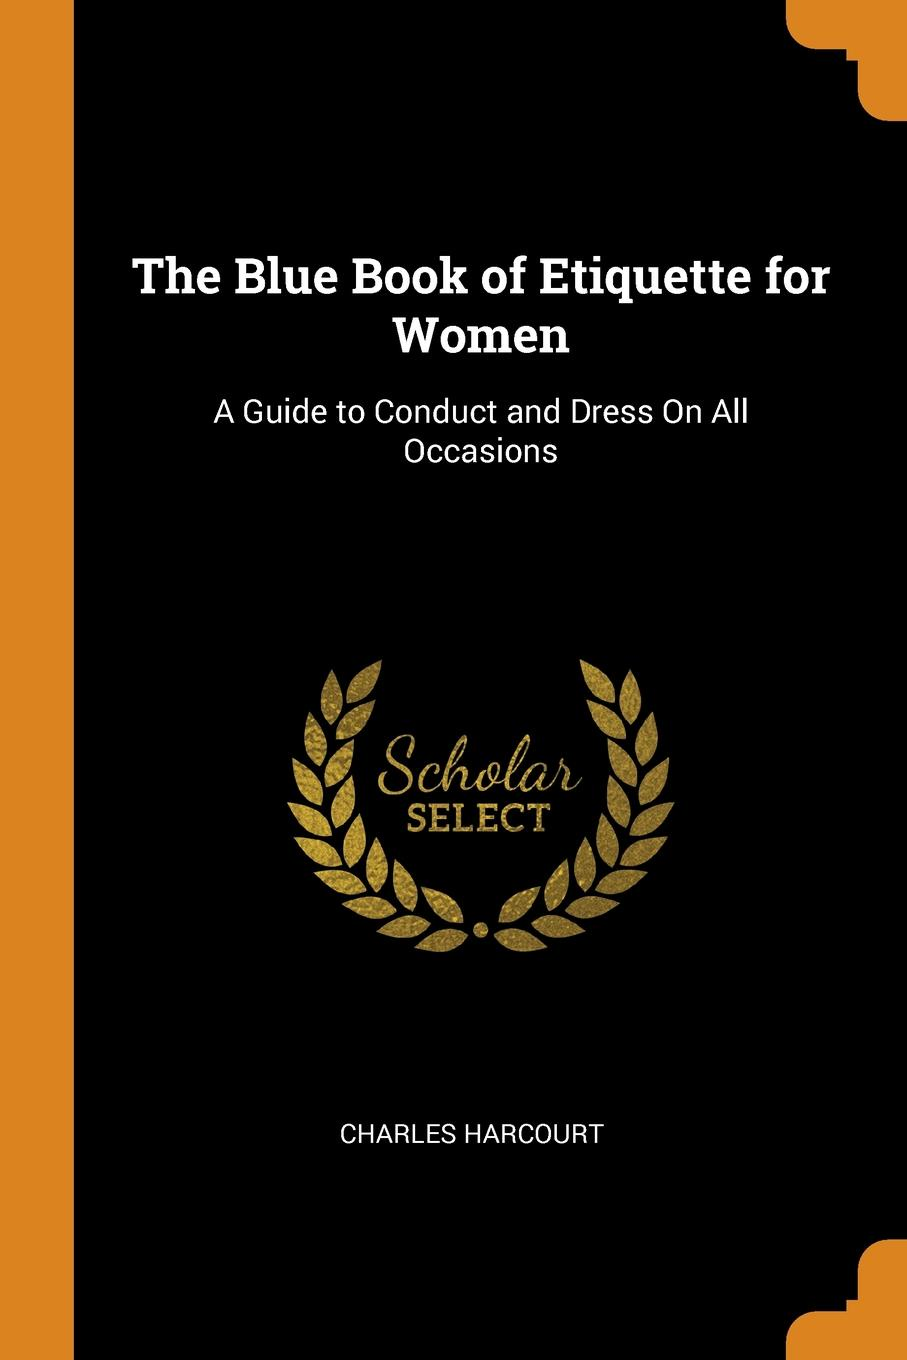 Charles Harcourt. The Blue Book of Etiquette for Women. A Guide to Conduct and Dress On All Occasions